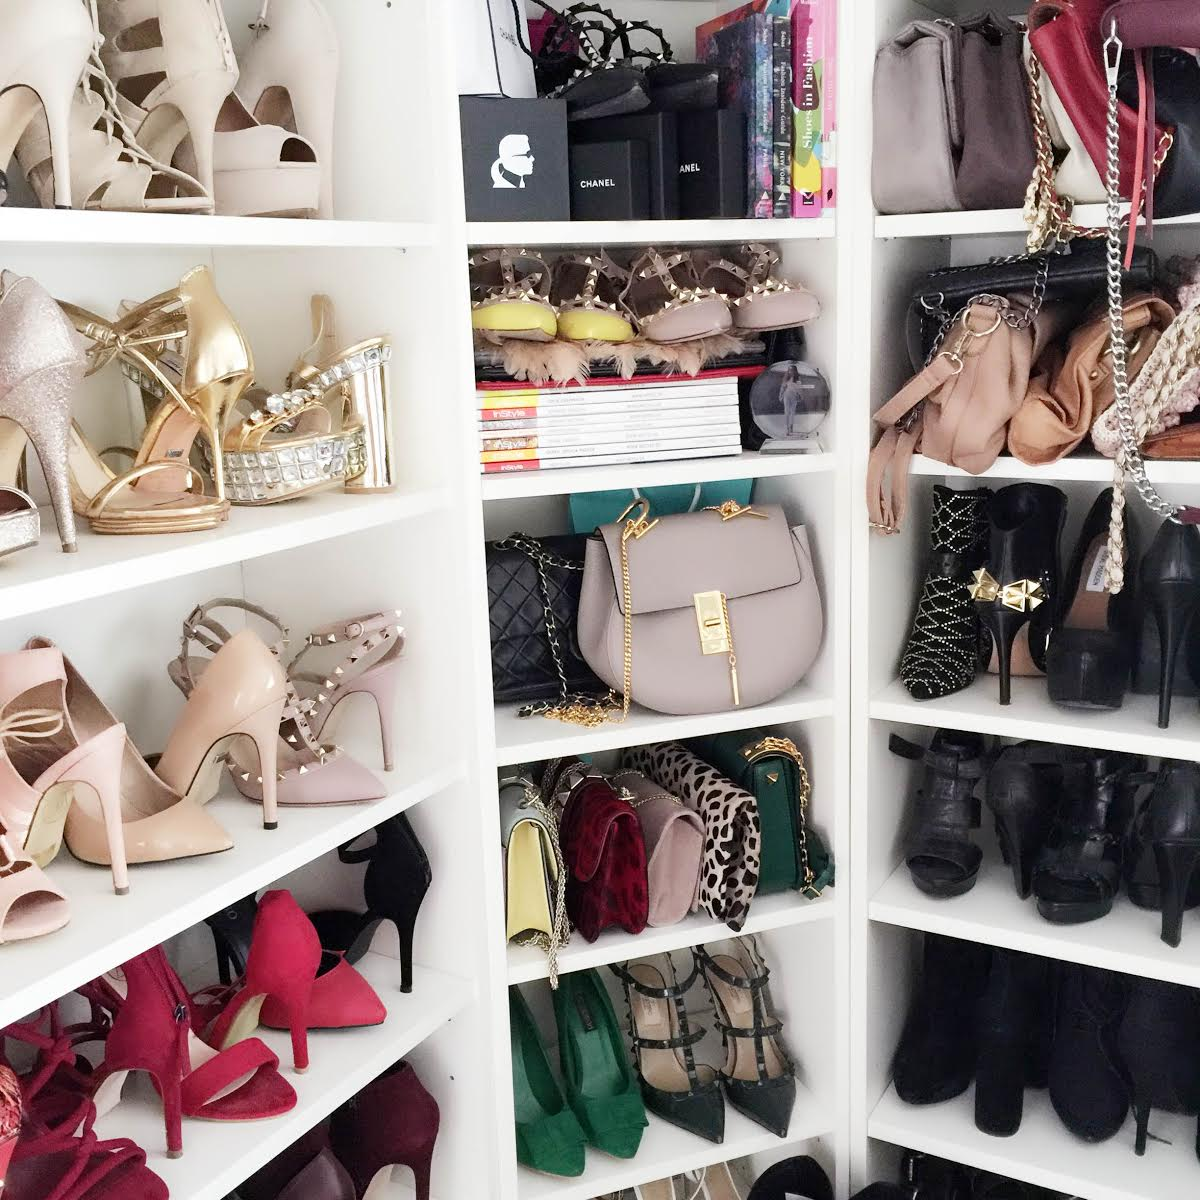 fashionhippieloves-closet-shoes-bags